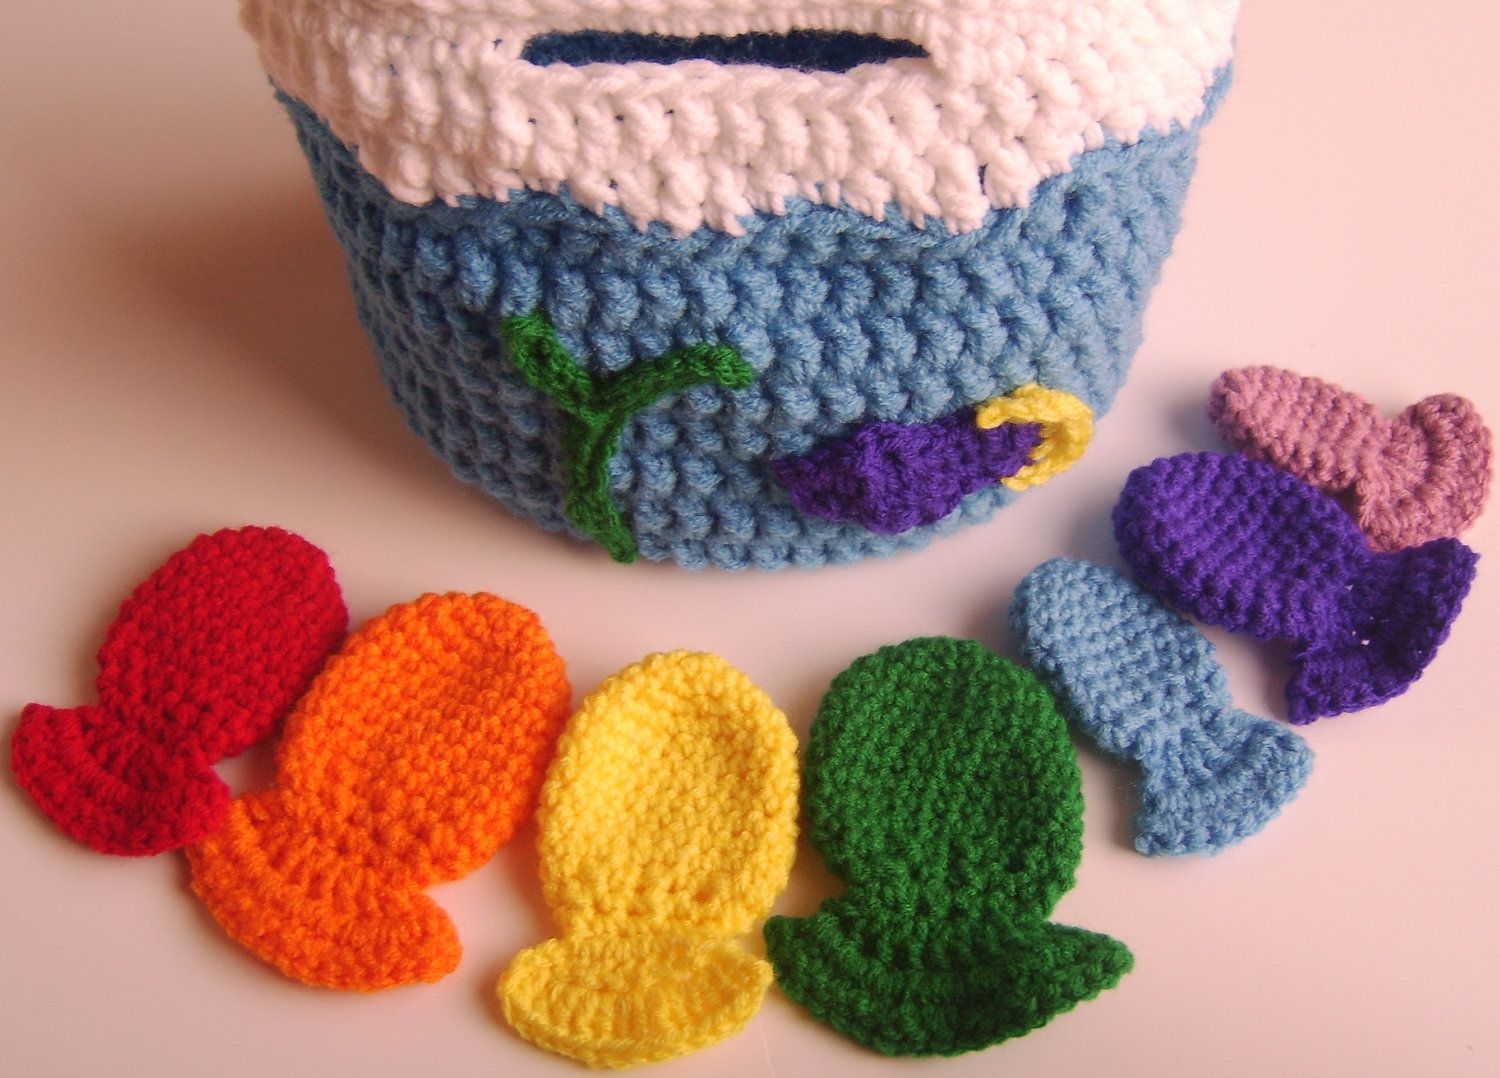 """Crochet Rainbow  """"Fishbowl"""" Tote, Made to Order, Crochet Toy, Amigurumi, Baby toy, Toddler Toy. $35.00, via Etsy."""